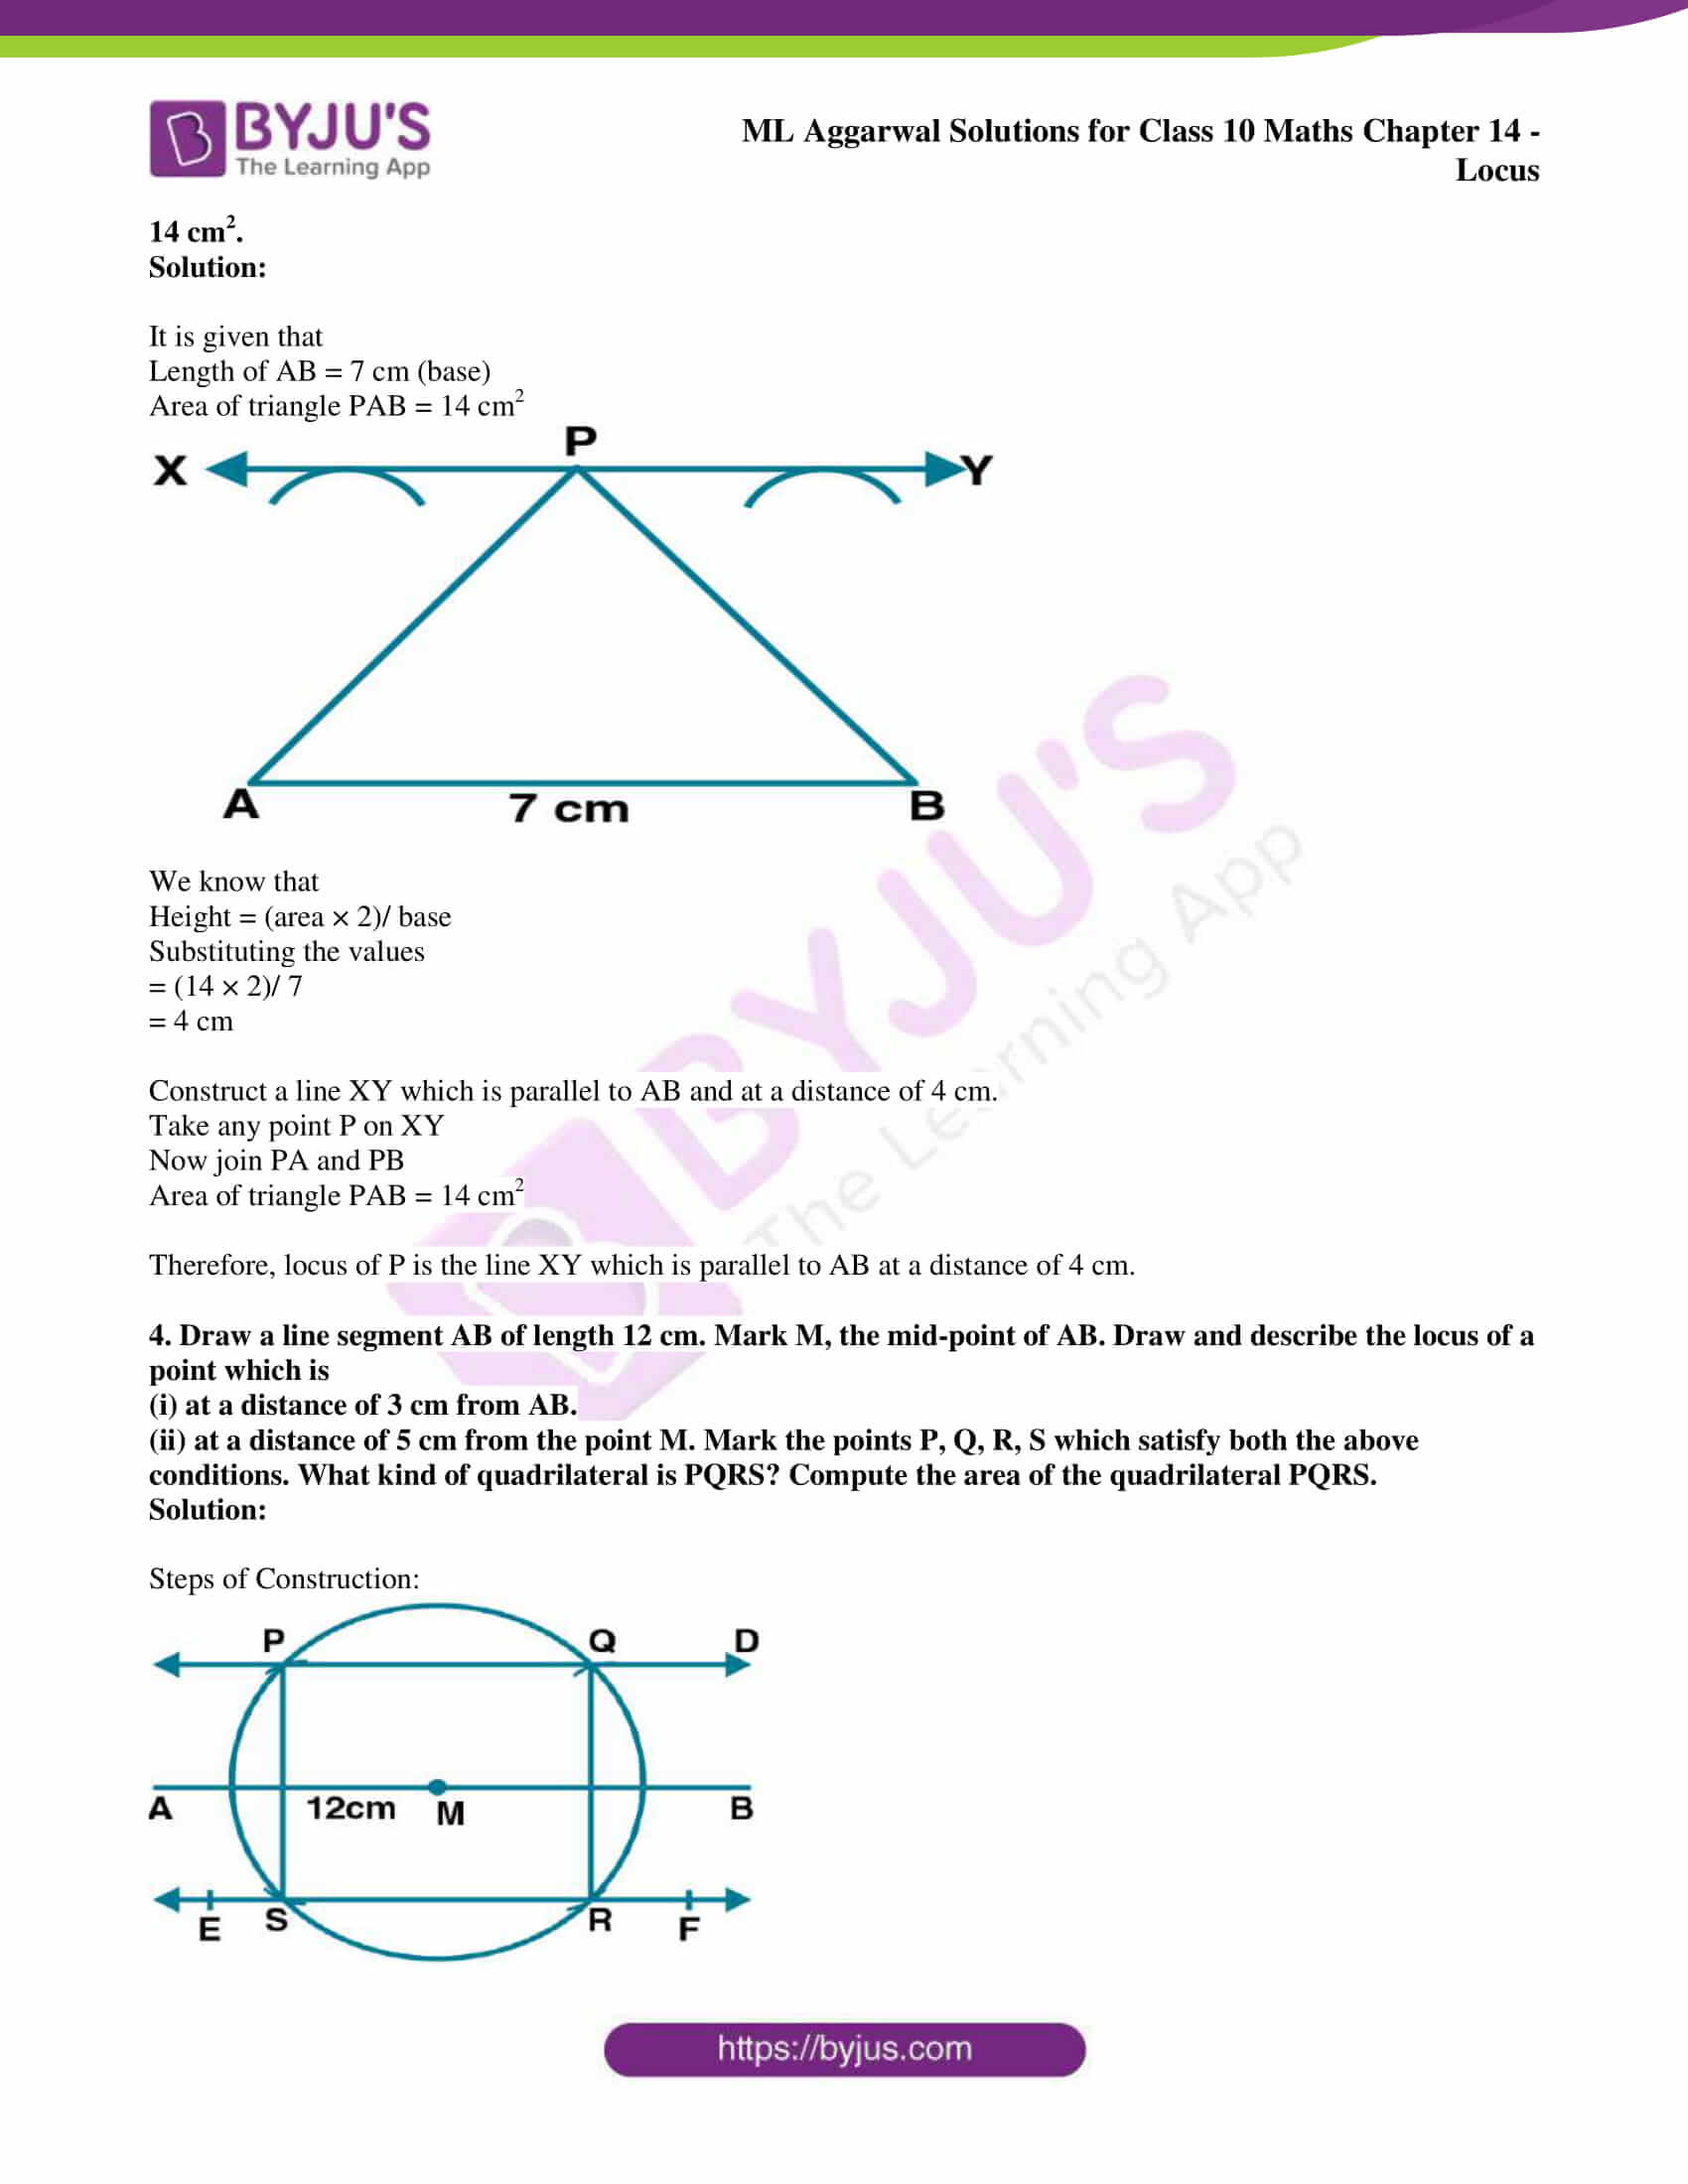 ml aggarwal solutions for class 10 maths chapter 14 20